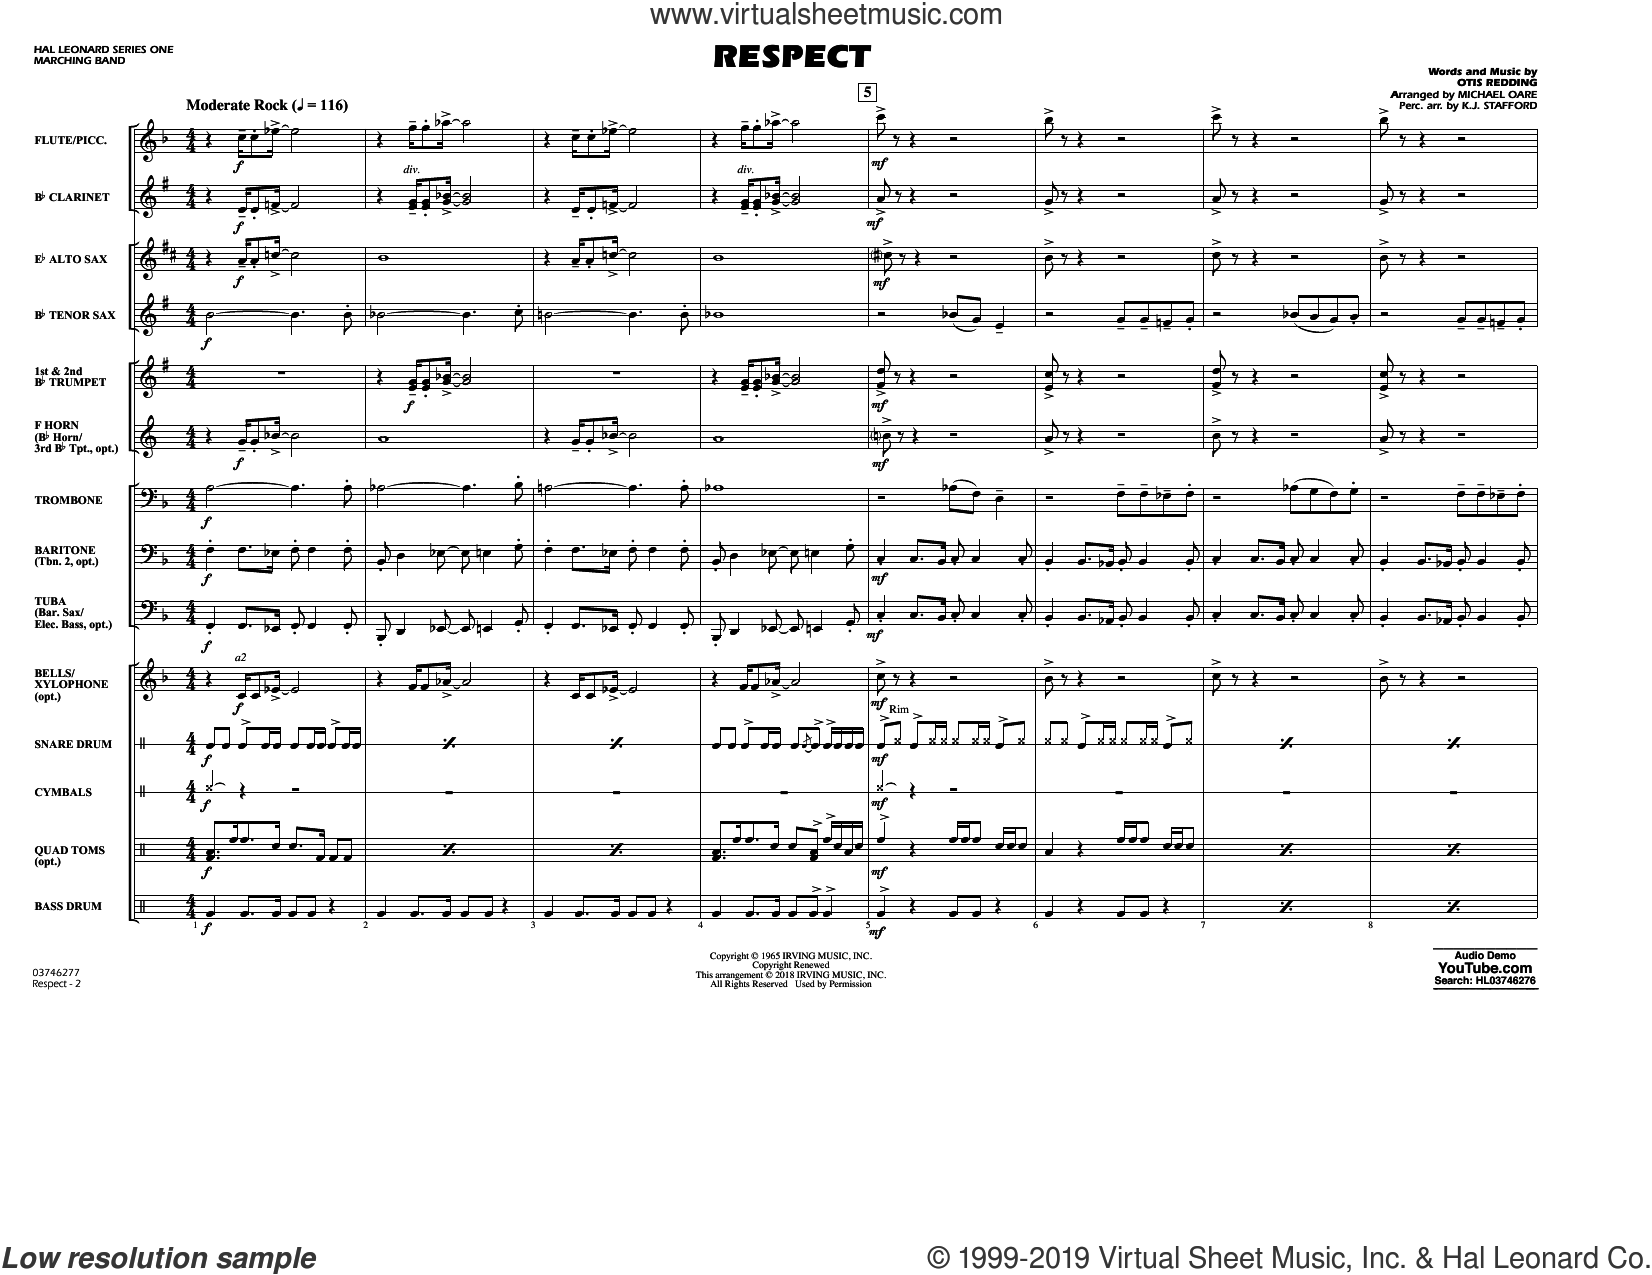 Respect (arr. Michael Oare) (COMPLETE) sheet music for marching band by Aretha Franklin, K.J. Stafford, Michael Oare and Otis Redding, intermediate skill level